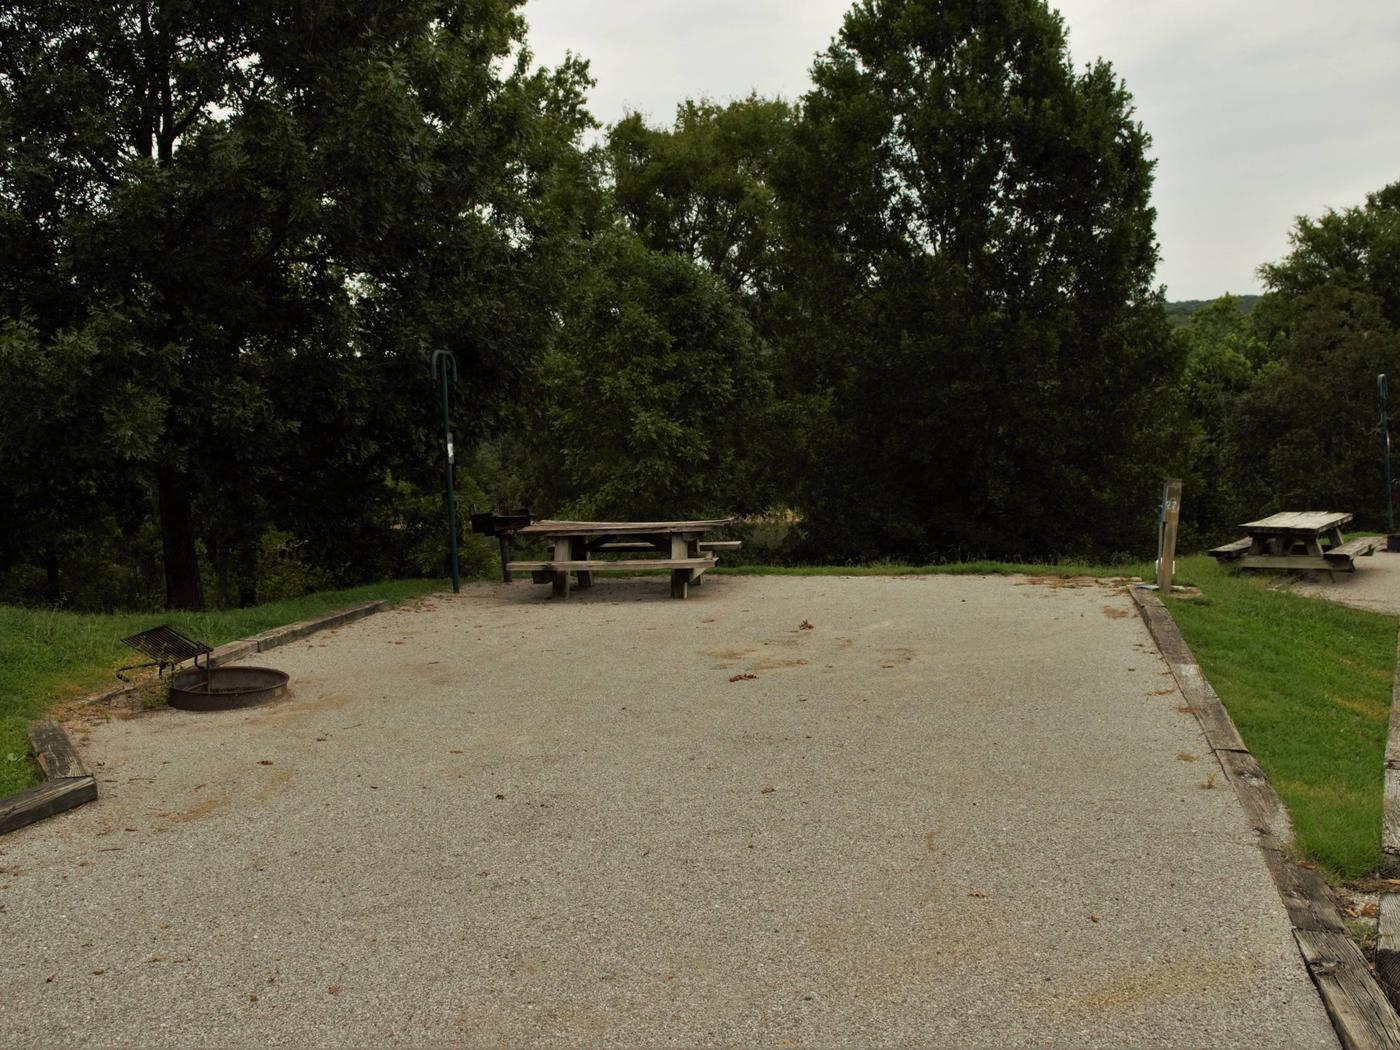 WILLOW GROVE CAMPGROUND SITE #27